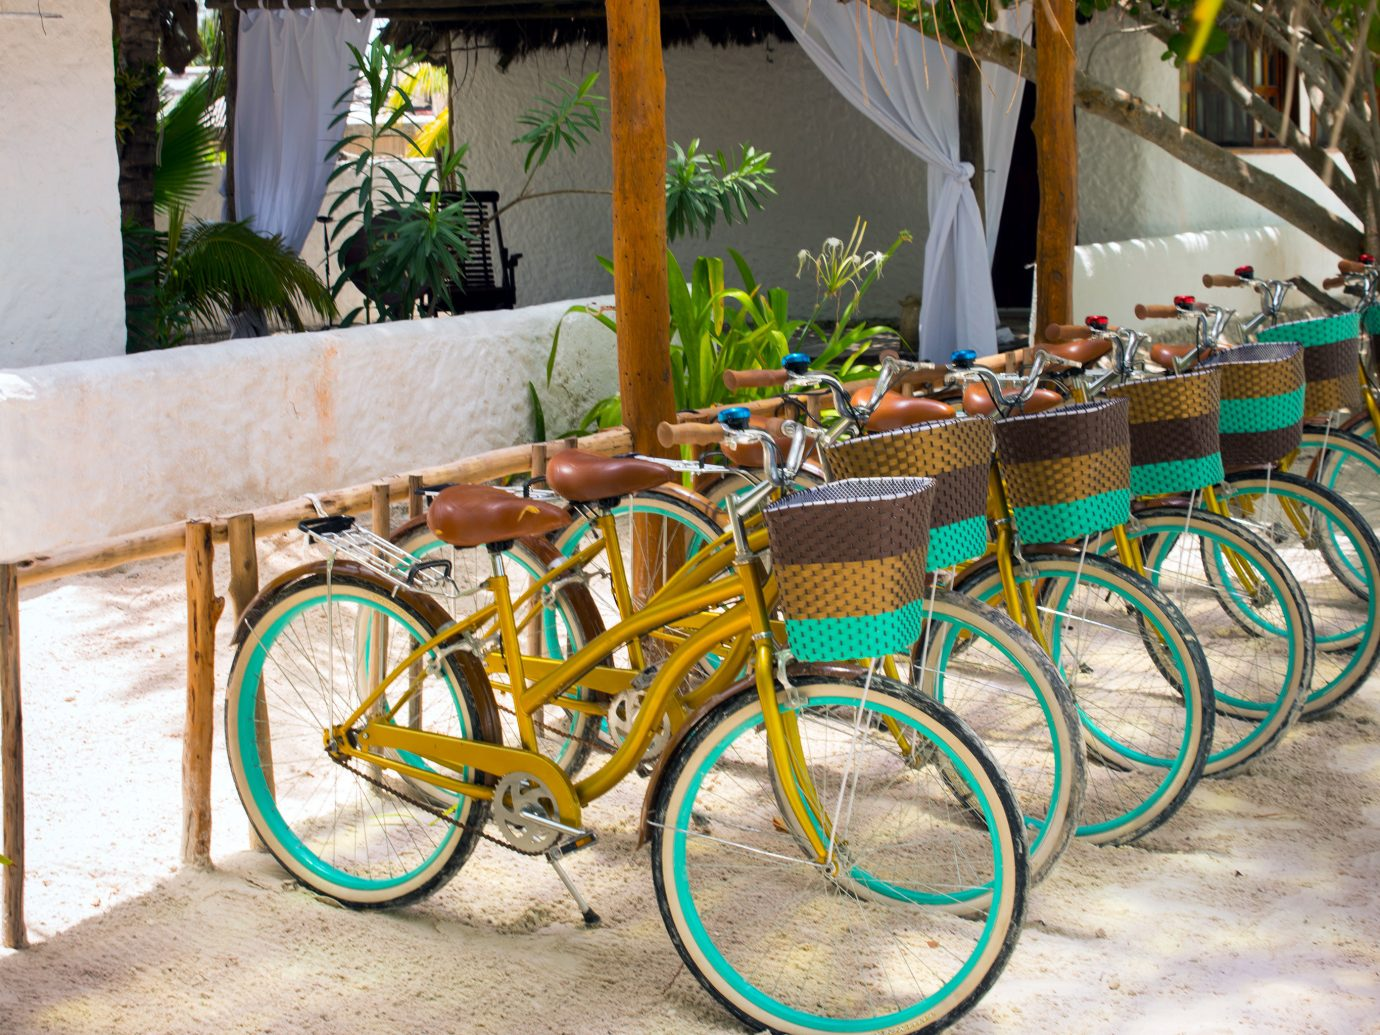 Beach Outdoor Activities Play Secret Getaways Trip Ideas outdoor bicycle ground vehicle parked colorful yellow sports equipment cart rack